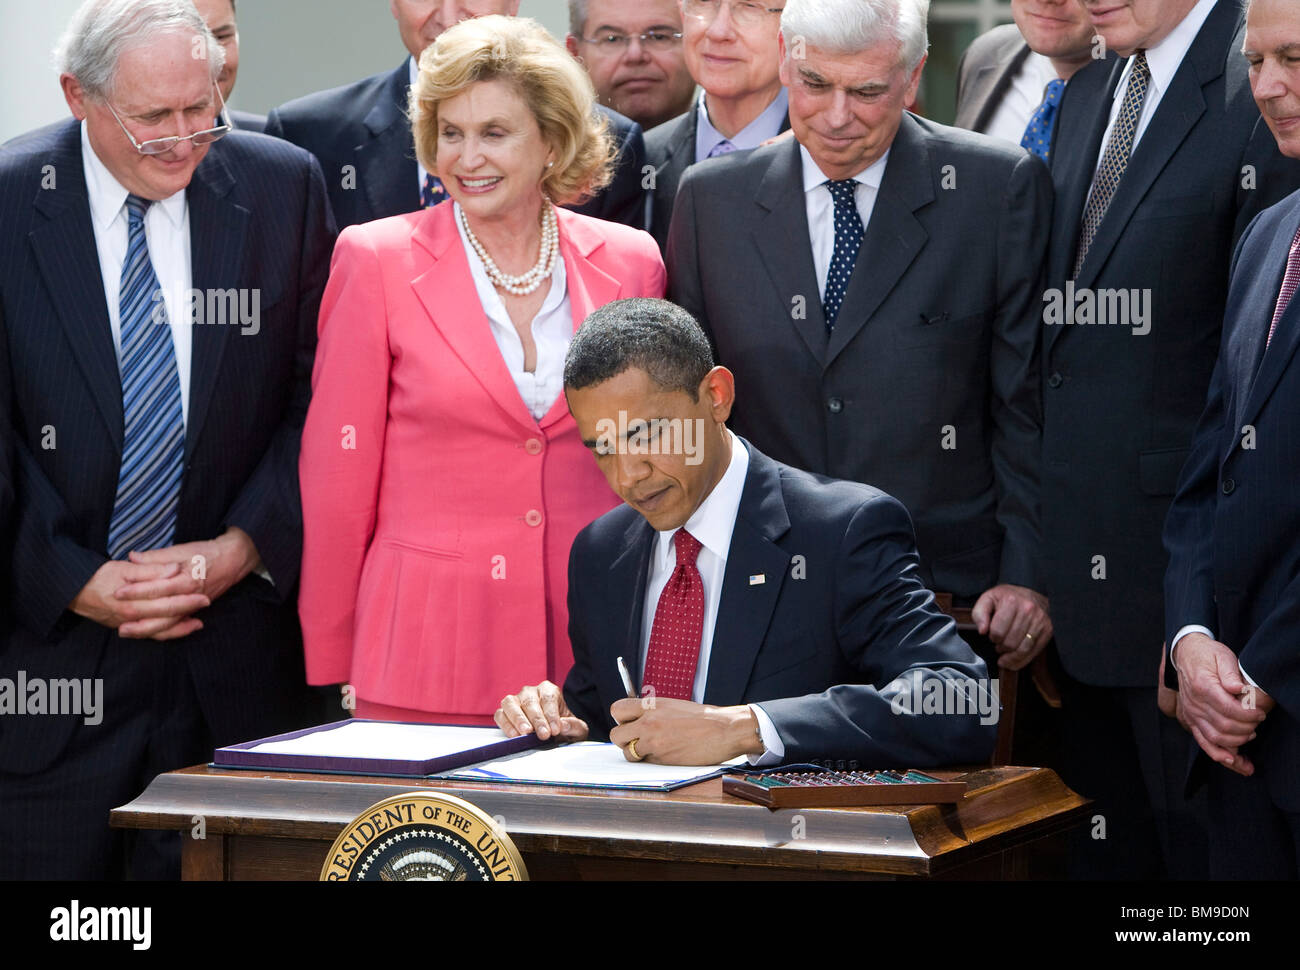 President Barack Obama Signs the Credit Card  Accountability Responsibility and Disclosure Act. - Stock Image